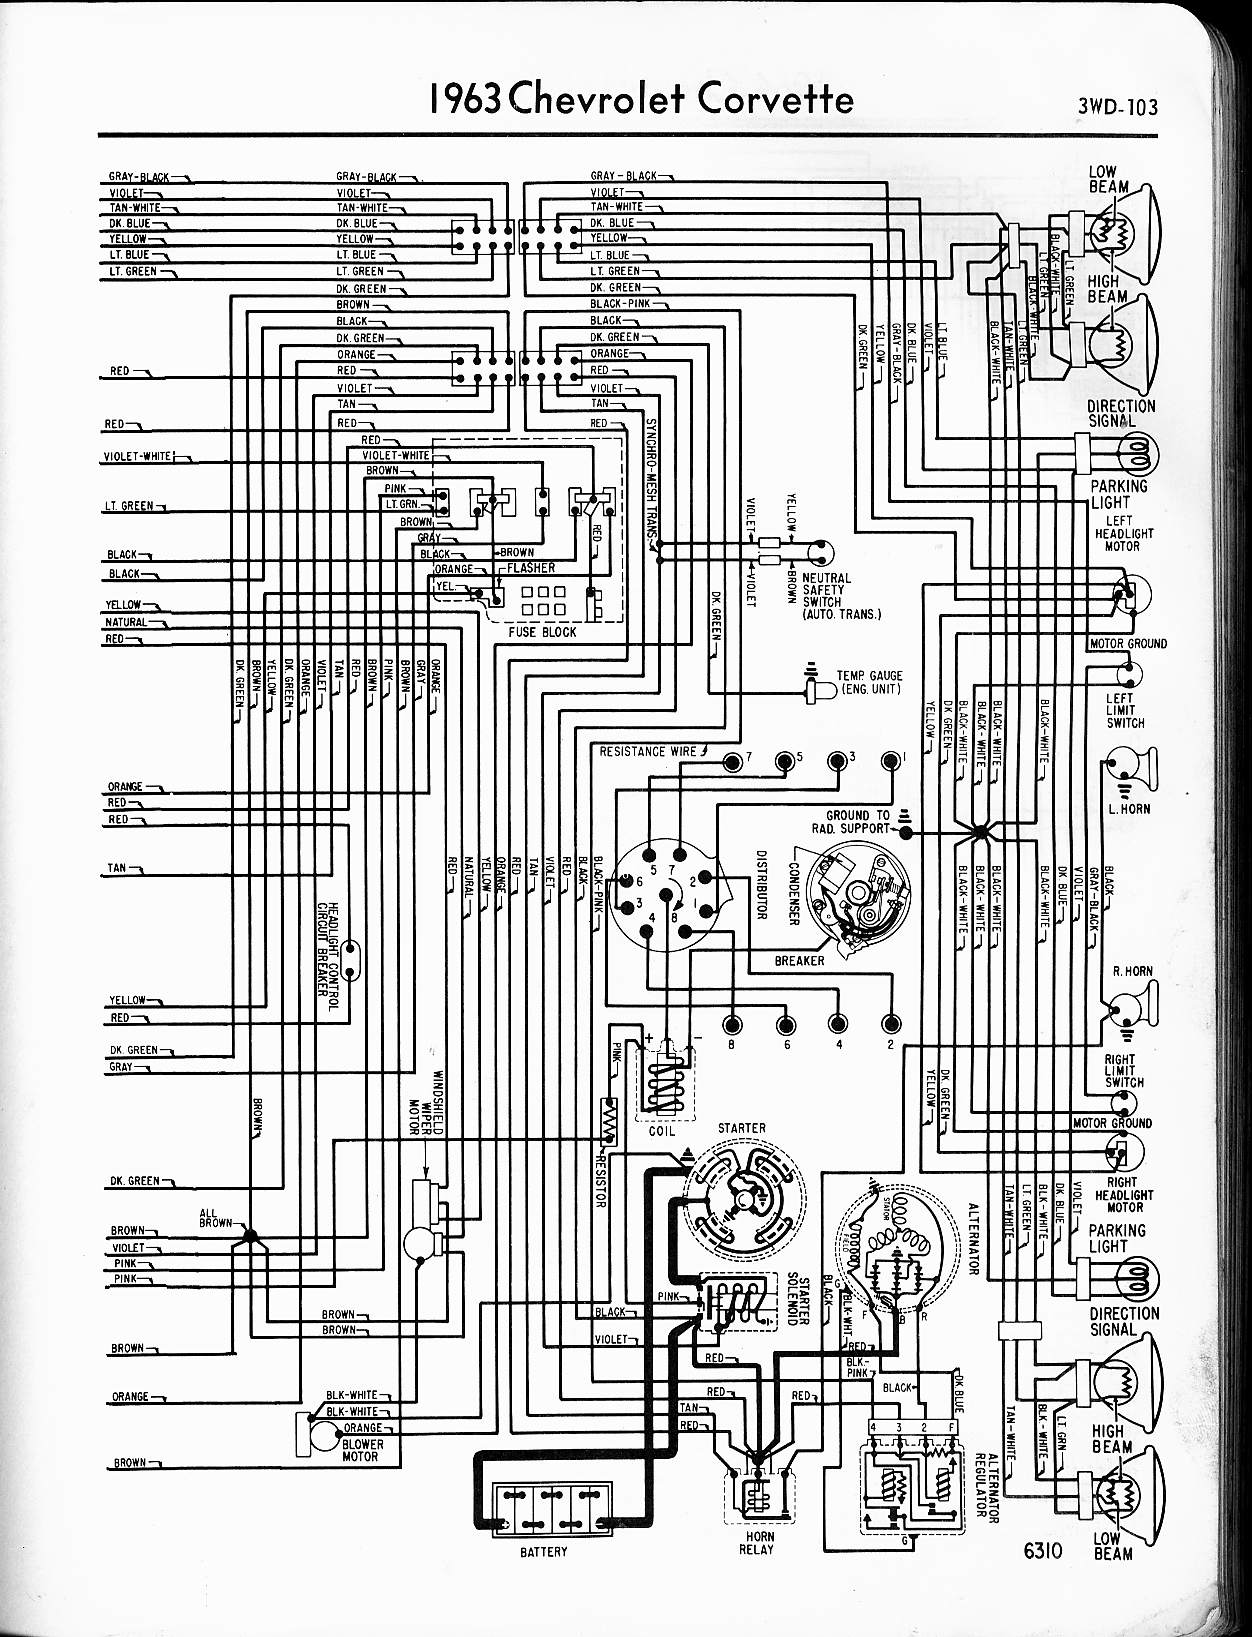 1979 Corvette Wiring Harness Diagram Not Lossing Gm Stereo C20 Library Rh 26 Winebottlecrafts Org Fuse Block 1975